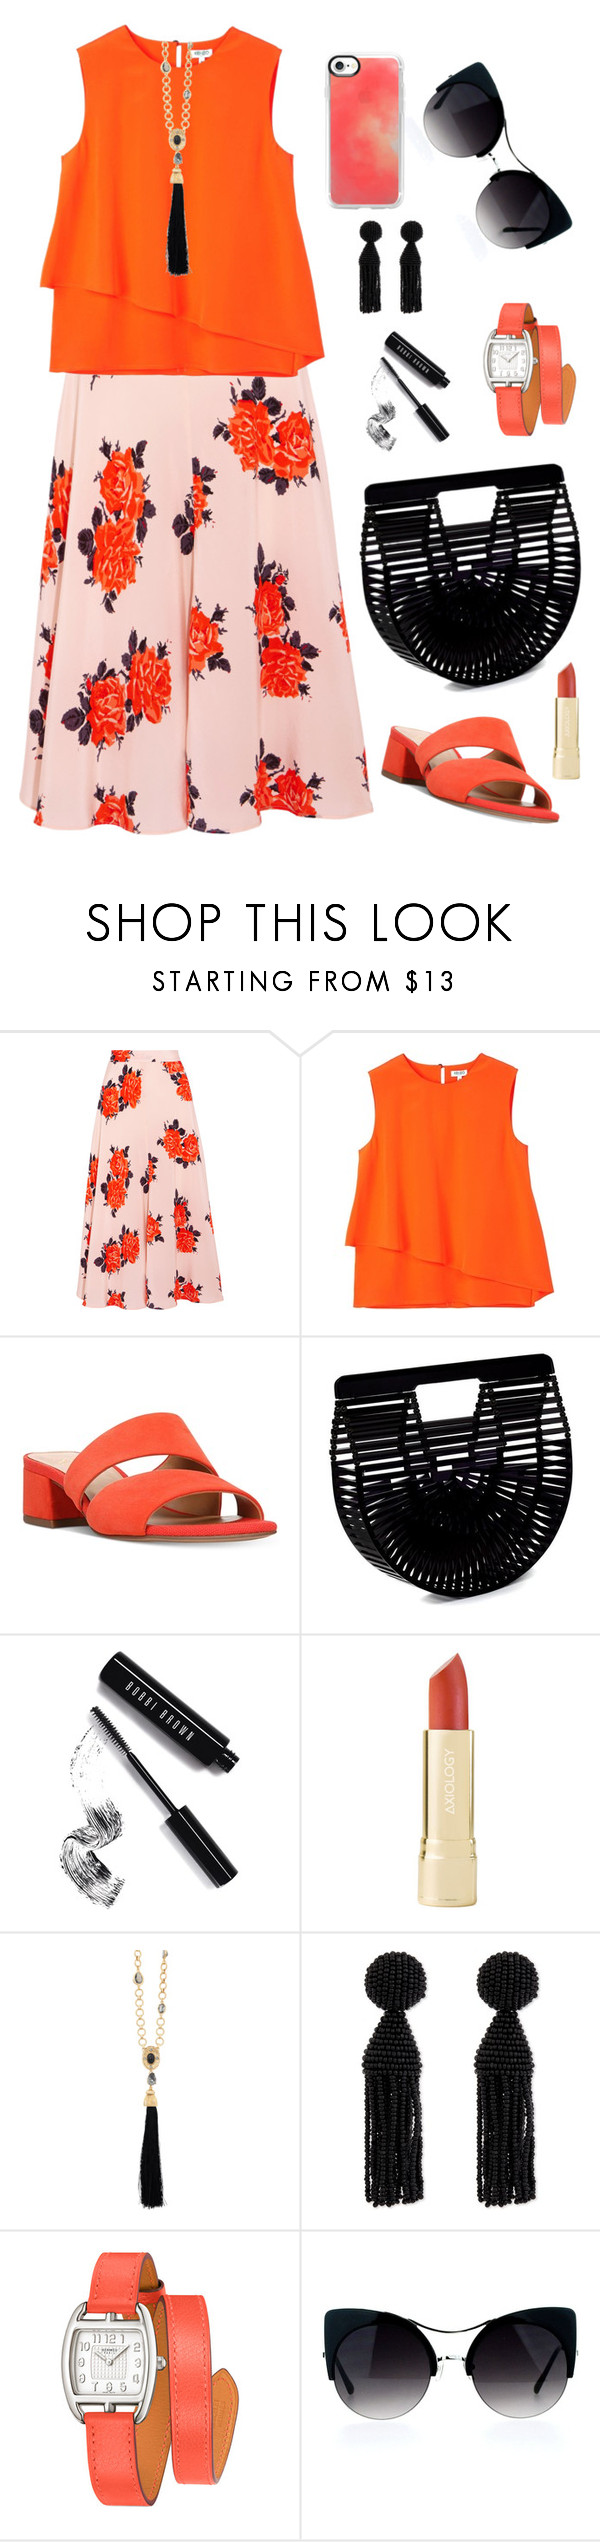 """Untitled #1974"" by ebramos ❤ liked on Polyvore featuring Ganni, Kenzo, Franco Sarto, Cult Gaia, Bobbi Brown Cosmetics, Oscar de la Renta, Hermès and Casetify"